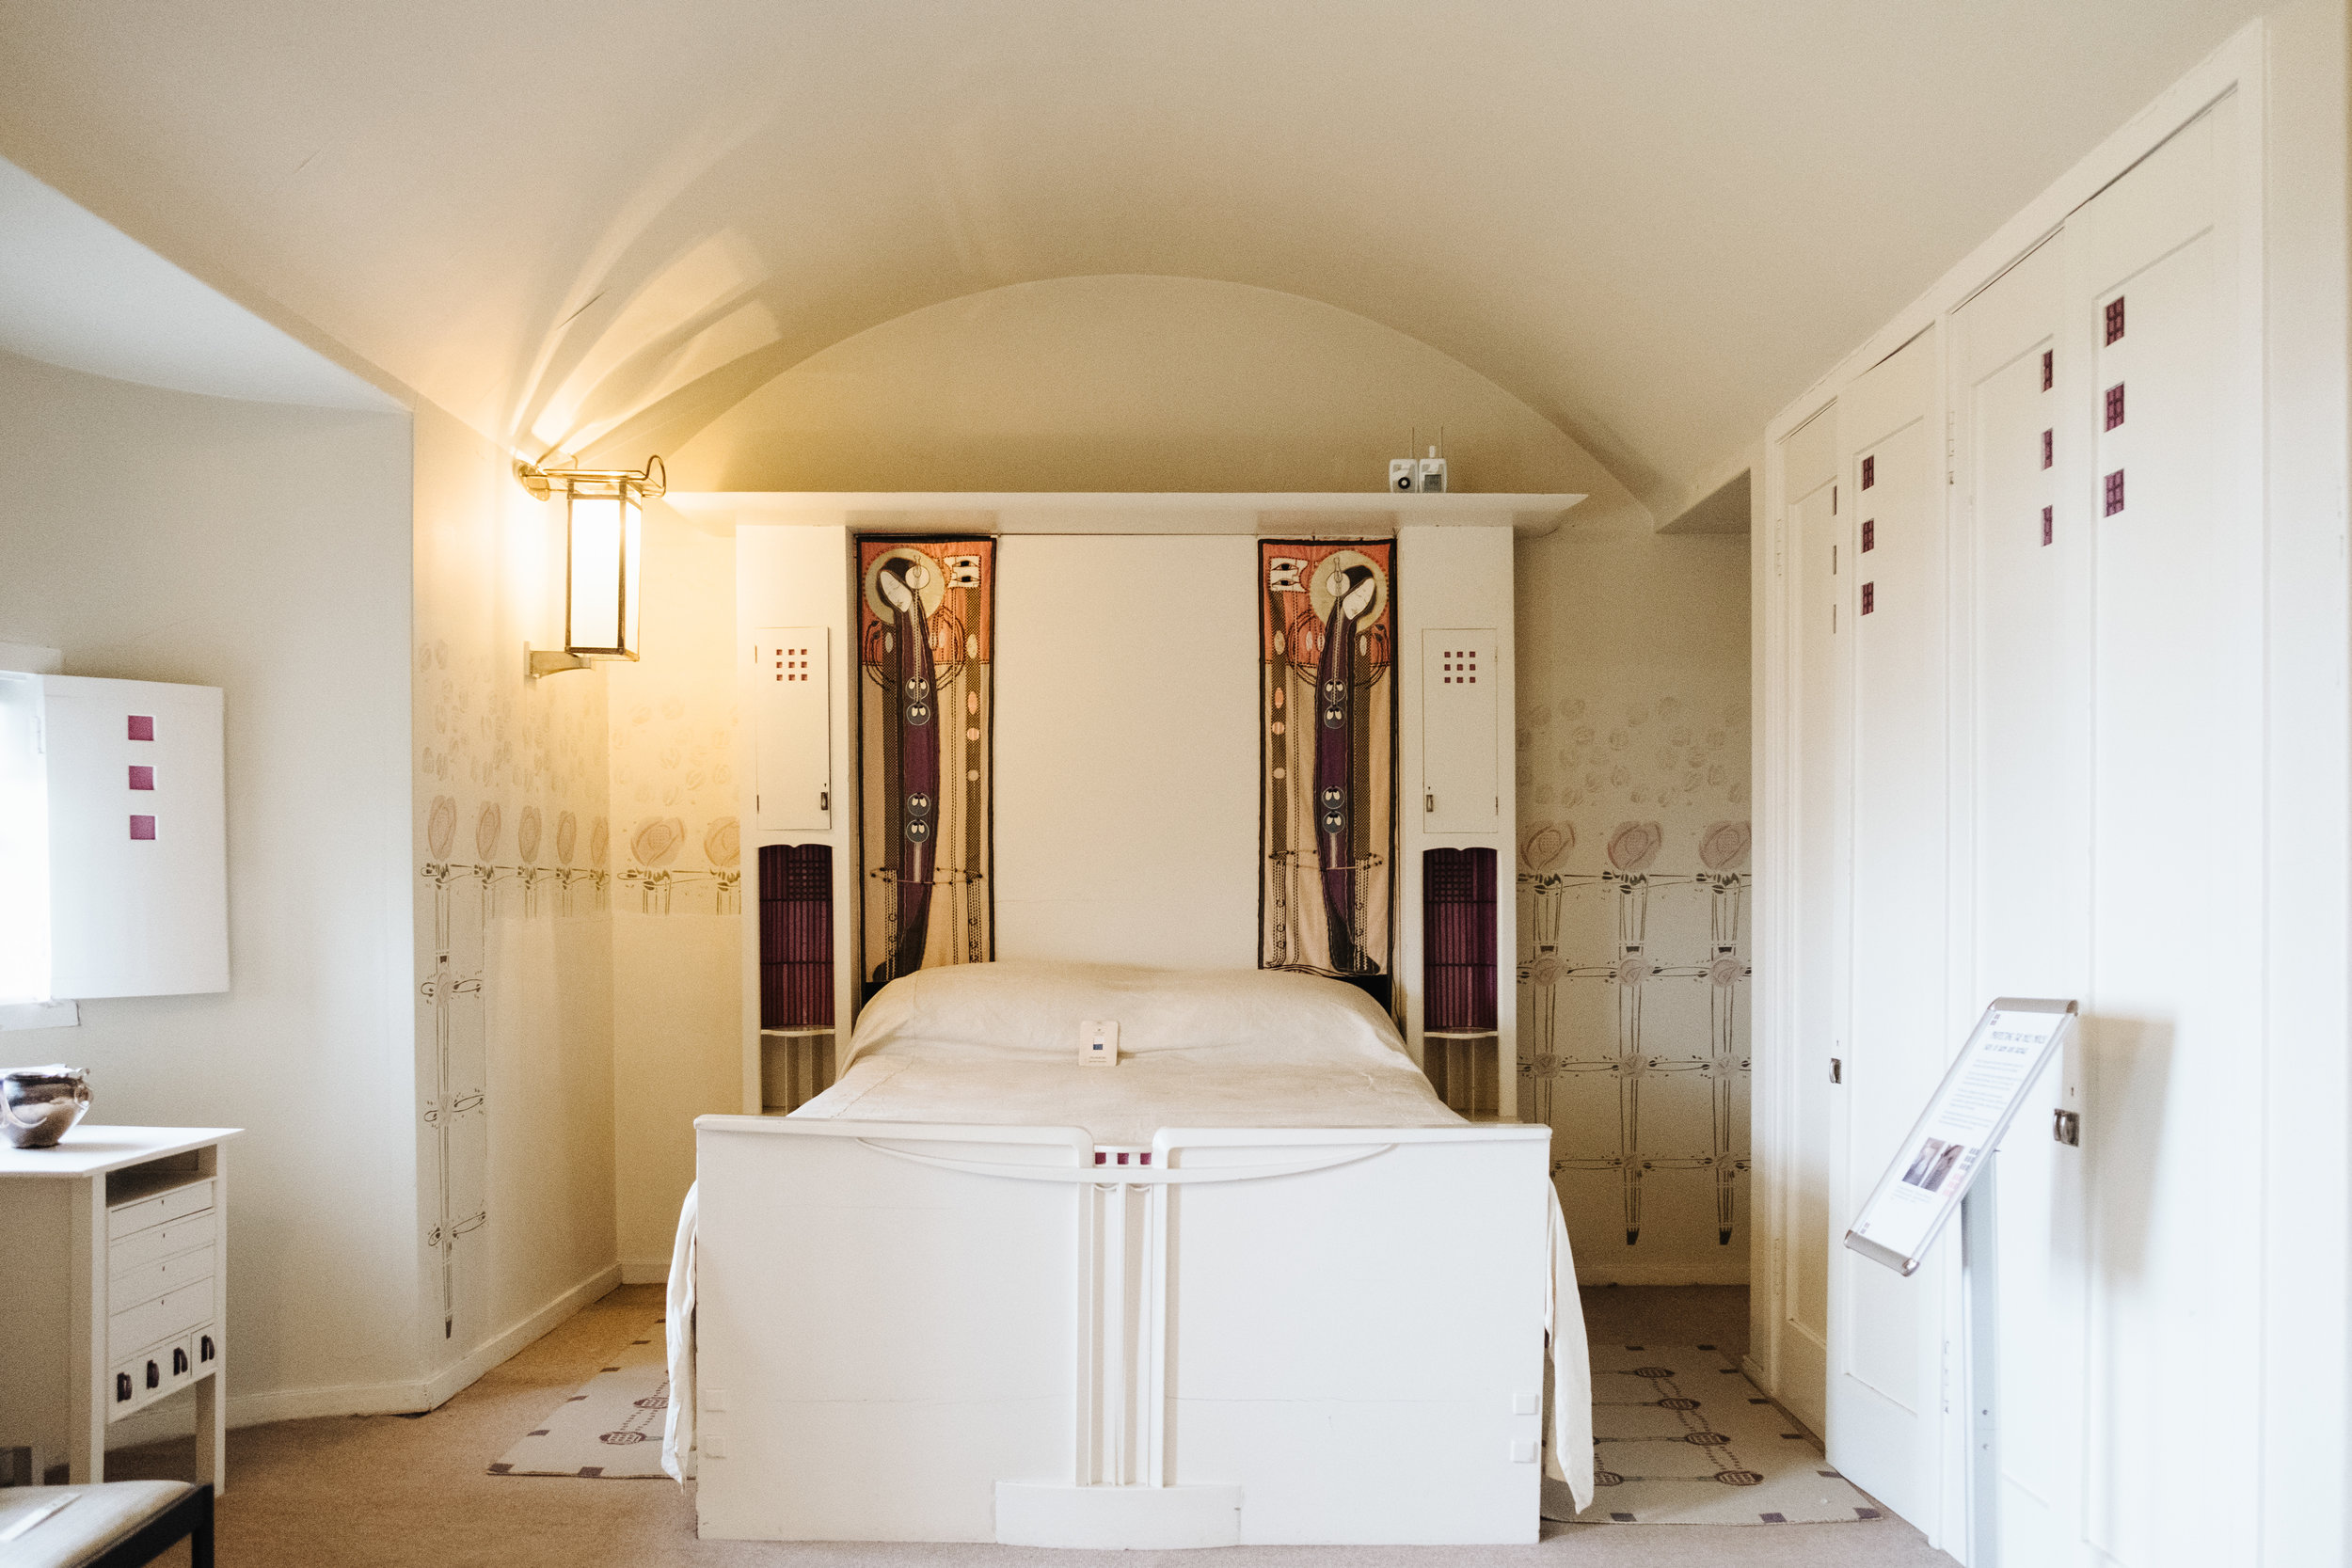 The small shuttered window in the curved recess next to the bed conjures up romantic imagery associated with fairytale castles.